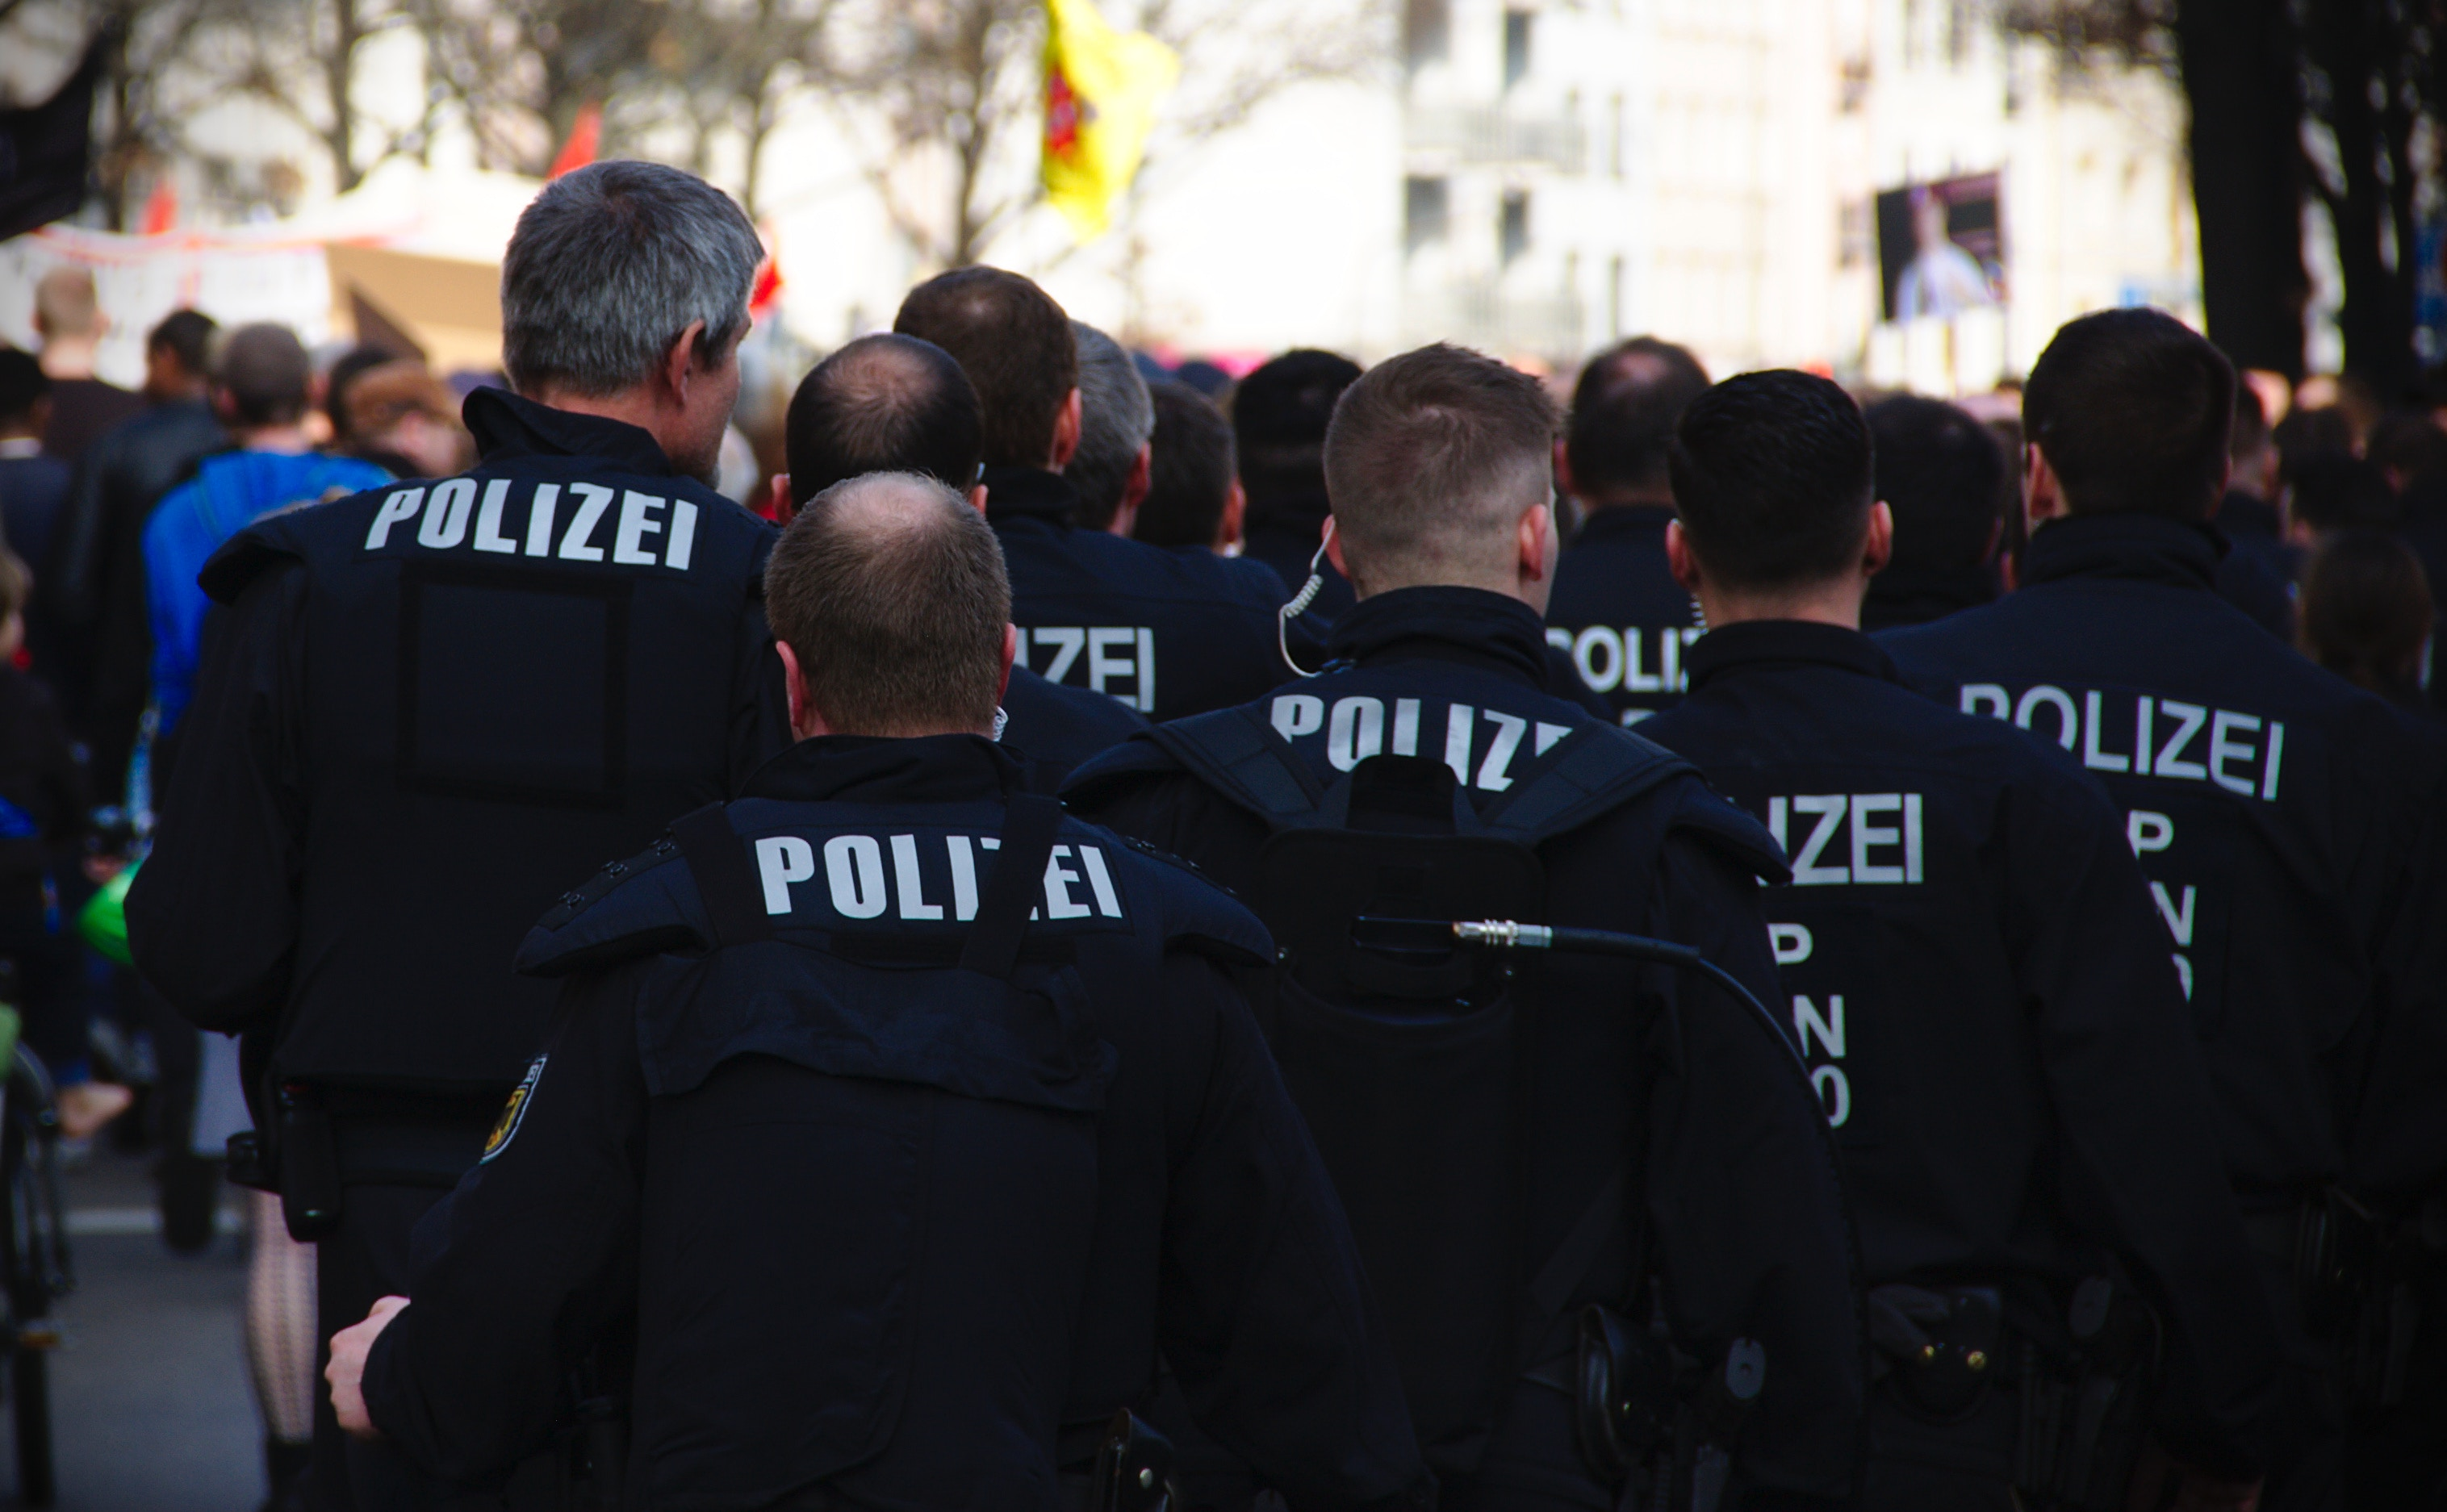 Polizia, https://unsplash.com/photos/tMItYMyKagc, Mike Powell, CC0